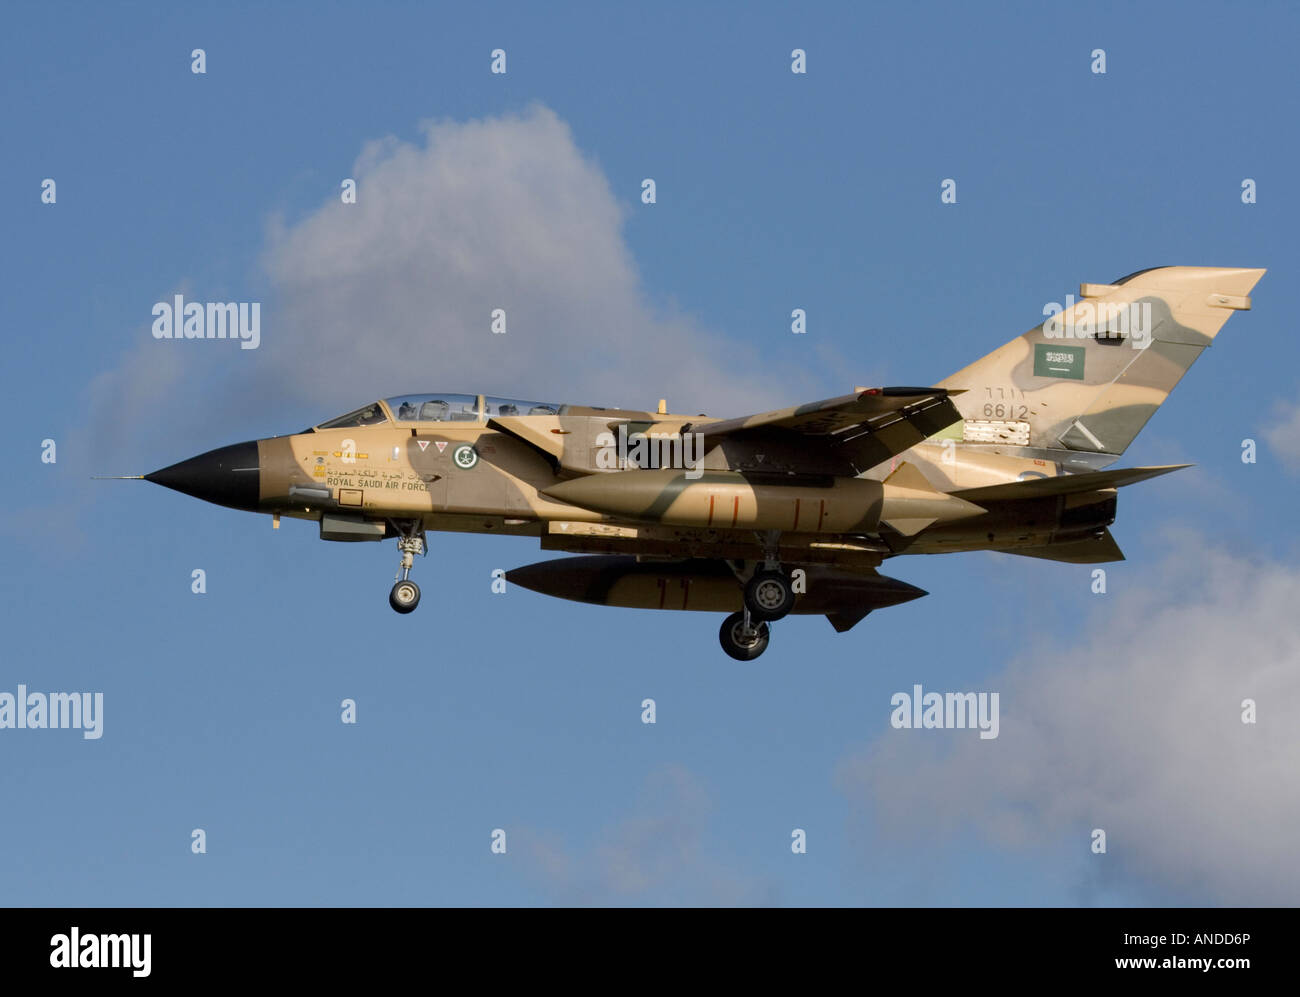 Royal Saudi Air Force Panavia Tornado IDS strike aircraft. Military aviation. - Stock Image